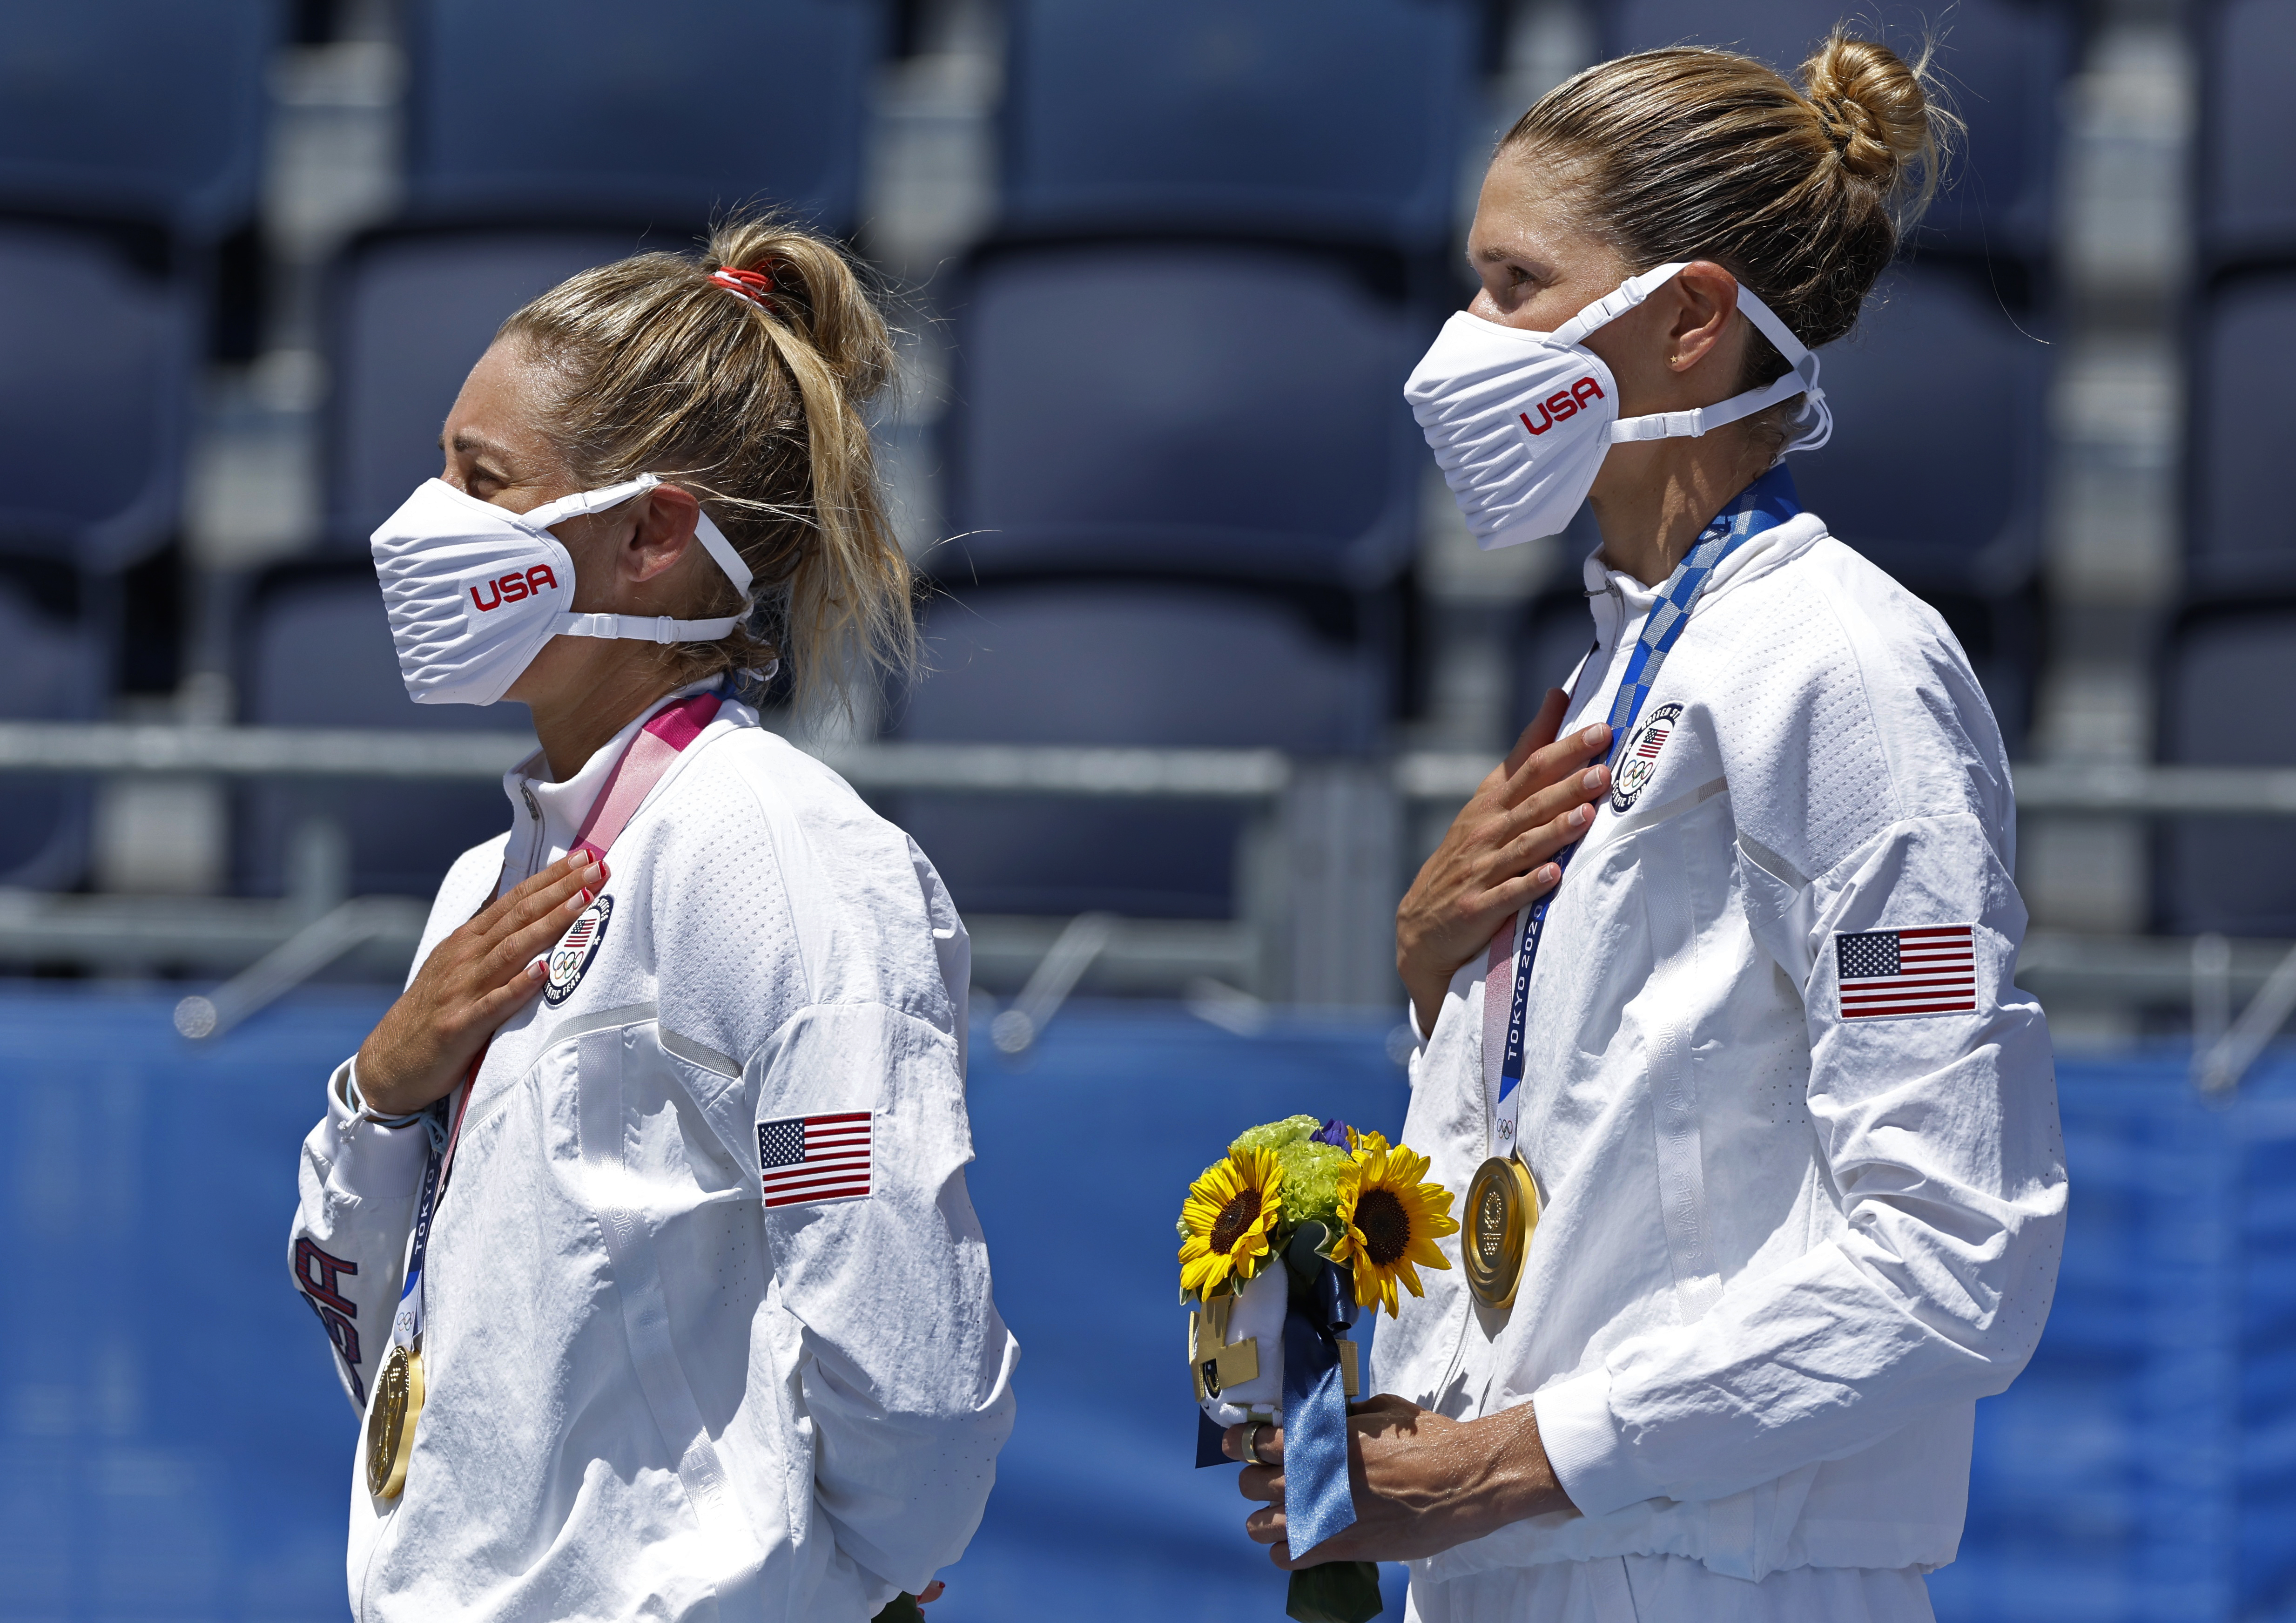 Tokyo 2020 Olympics - Beach Volleyball - Women - Medal Ceremony - Shiokaze Park, Tokyo, Japan - August 6, 2021. Gold medallists April Ross of the United States and Alix Klineman of the United States during the ceremony. REUTERS/John Sibley